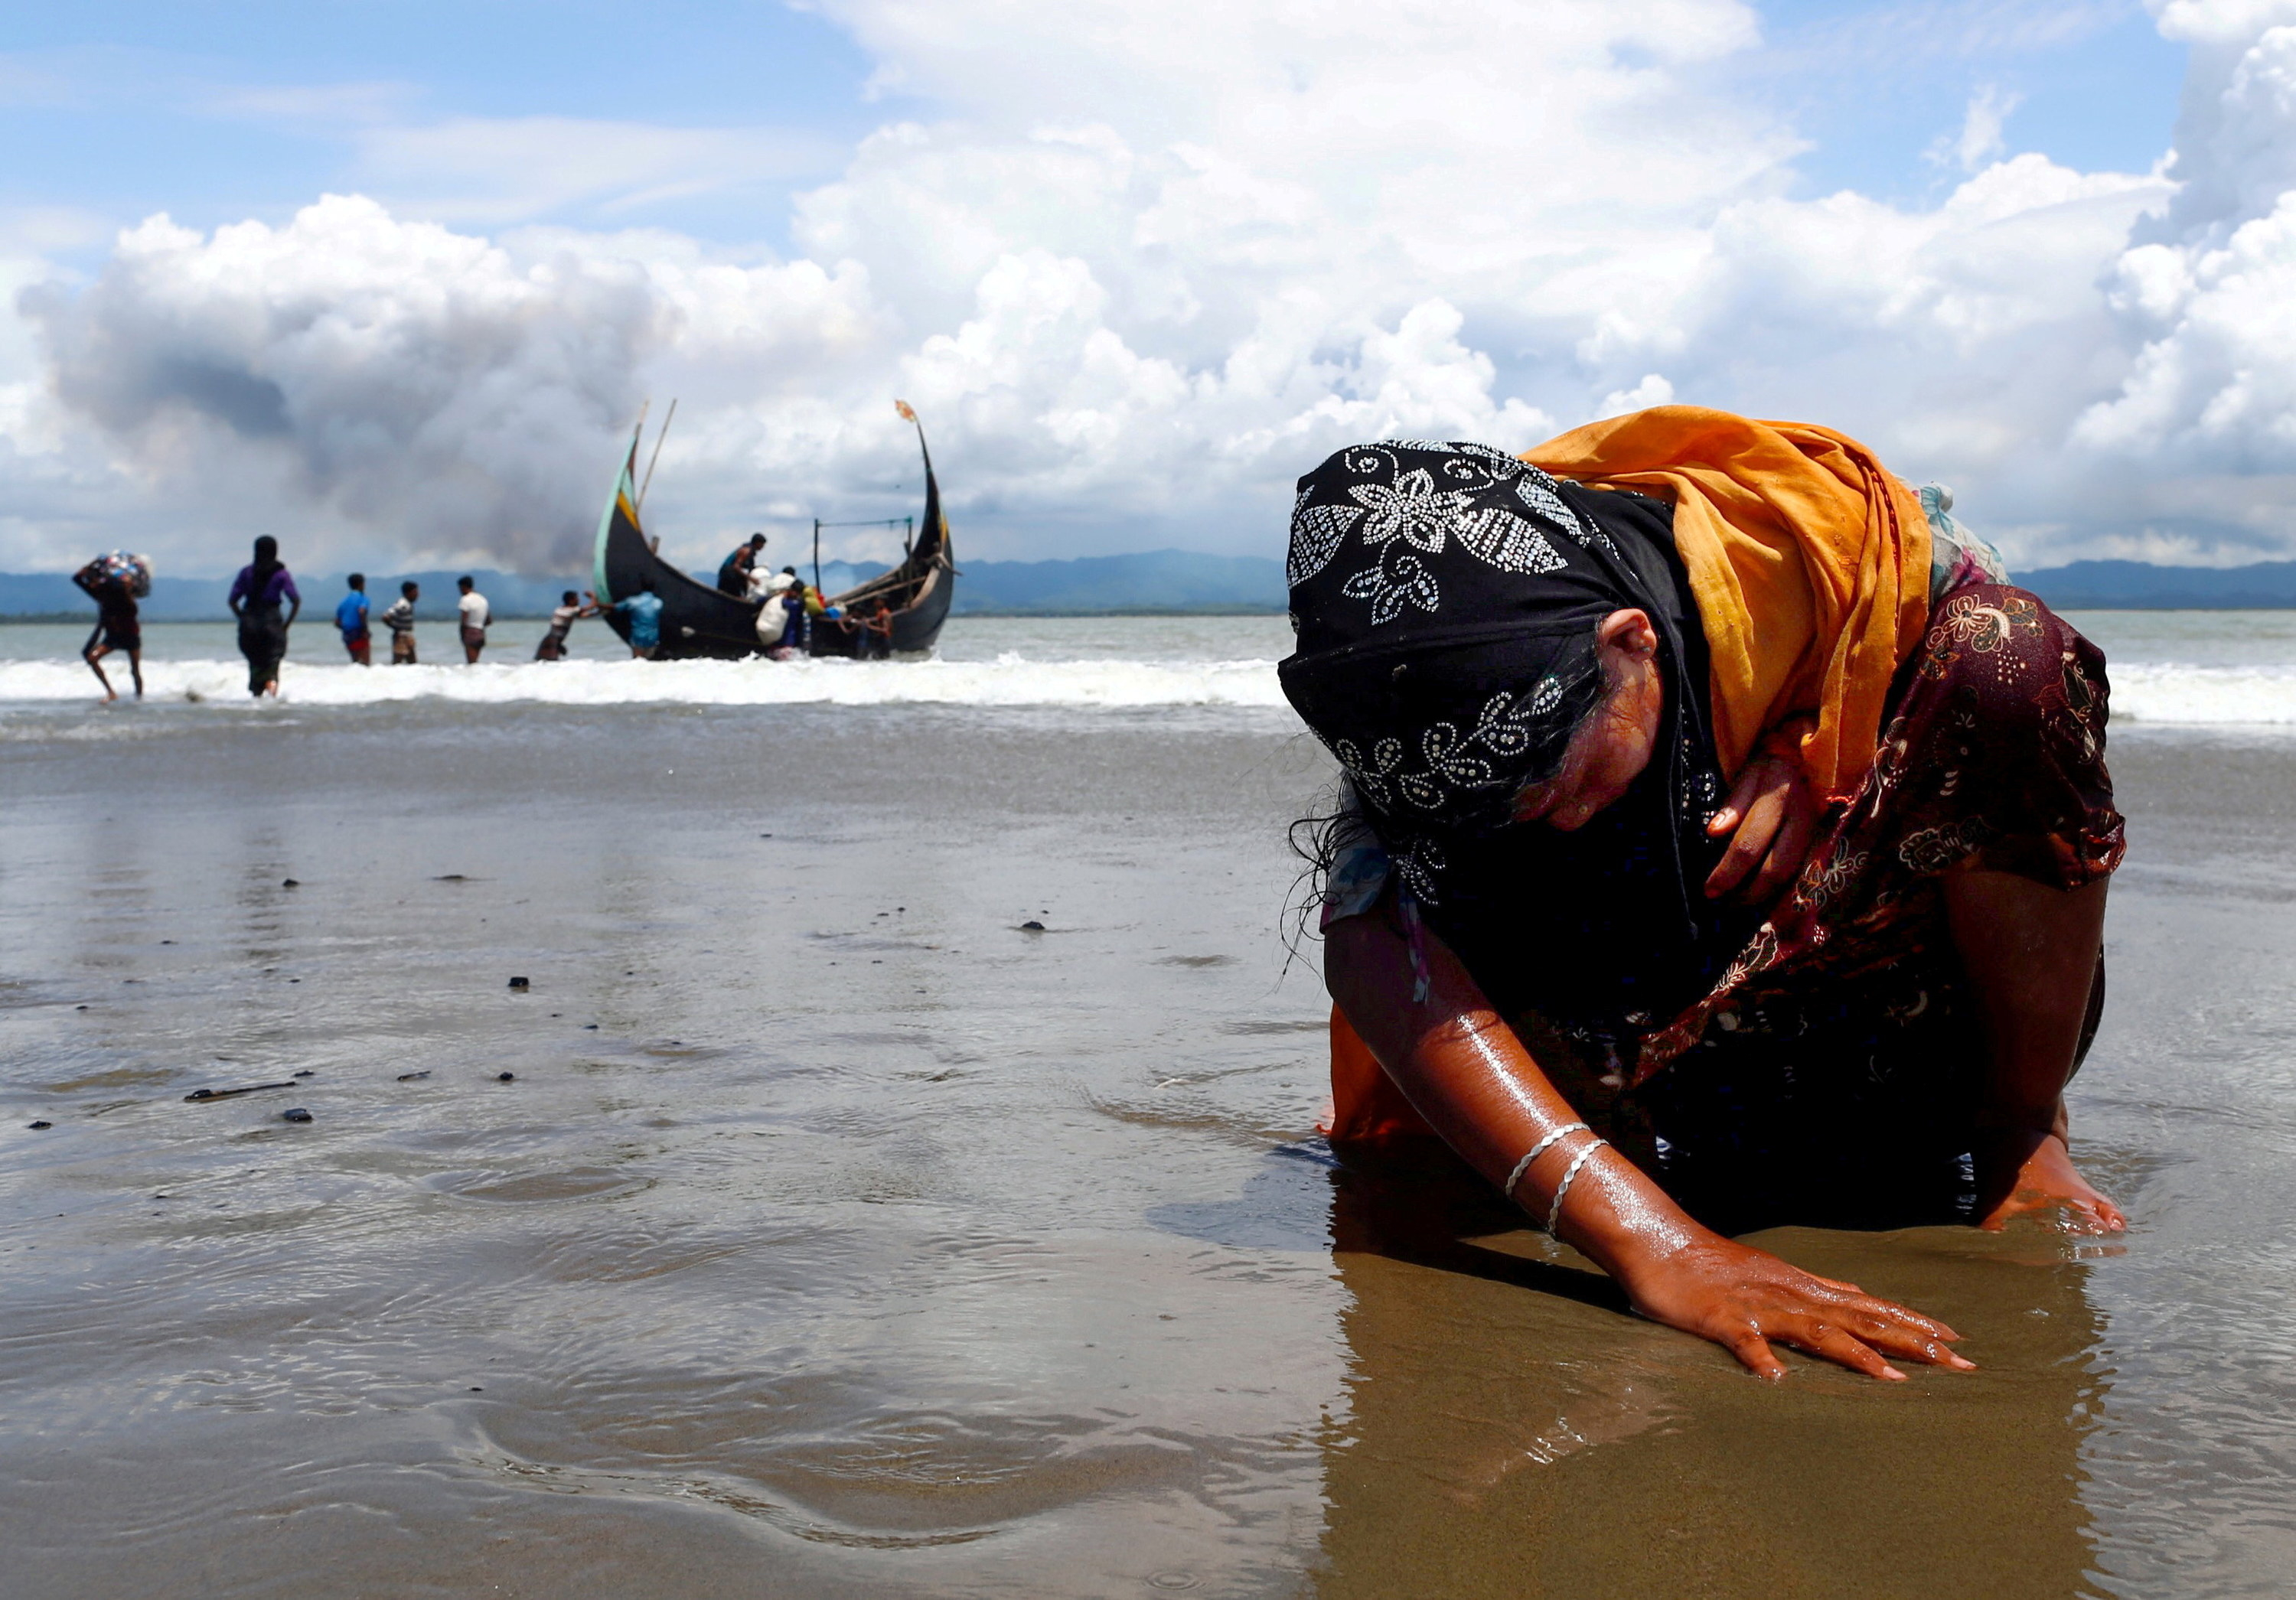 A woman leans down and places her hands on the sand, a boat with people is in the background at the beach behind her